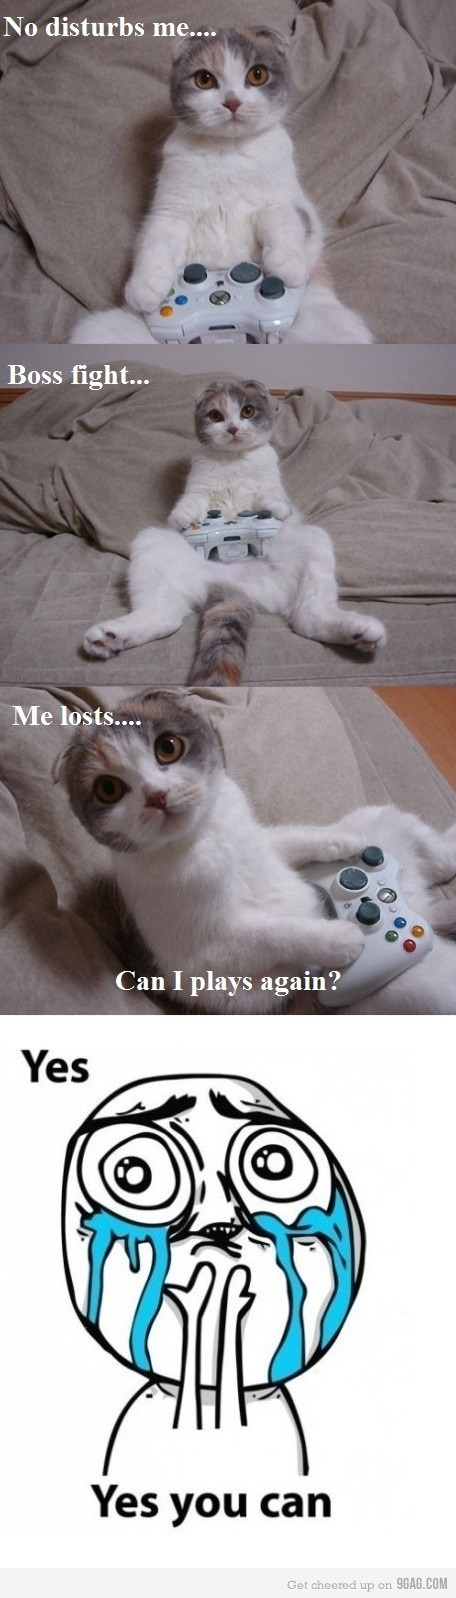 9gag, aaaaaaaaaaaaaaawn, cat, cute, cutie, game, omg, ooooh, play, sweet, xbox